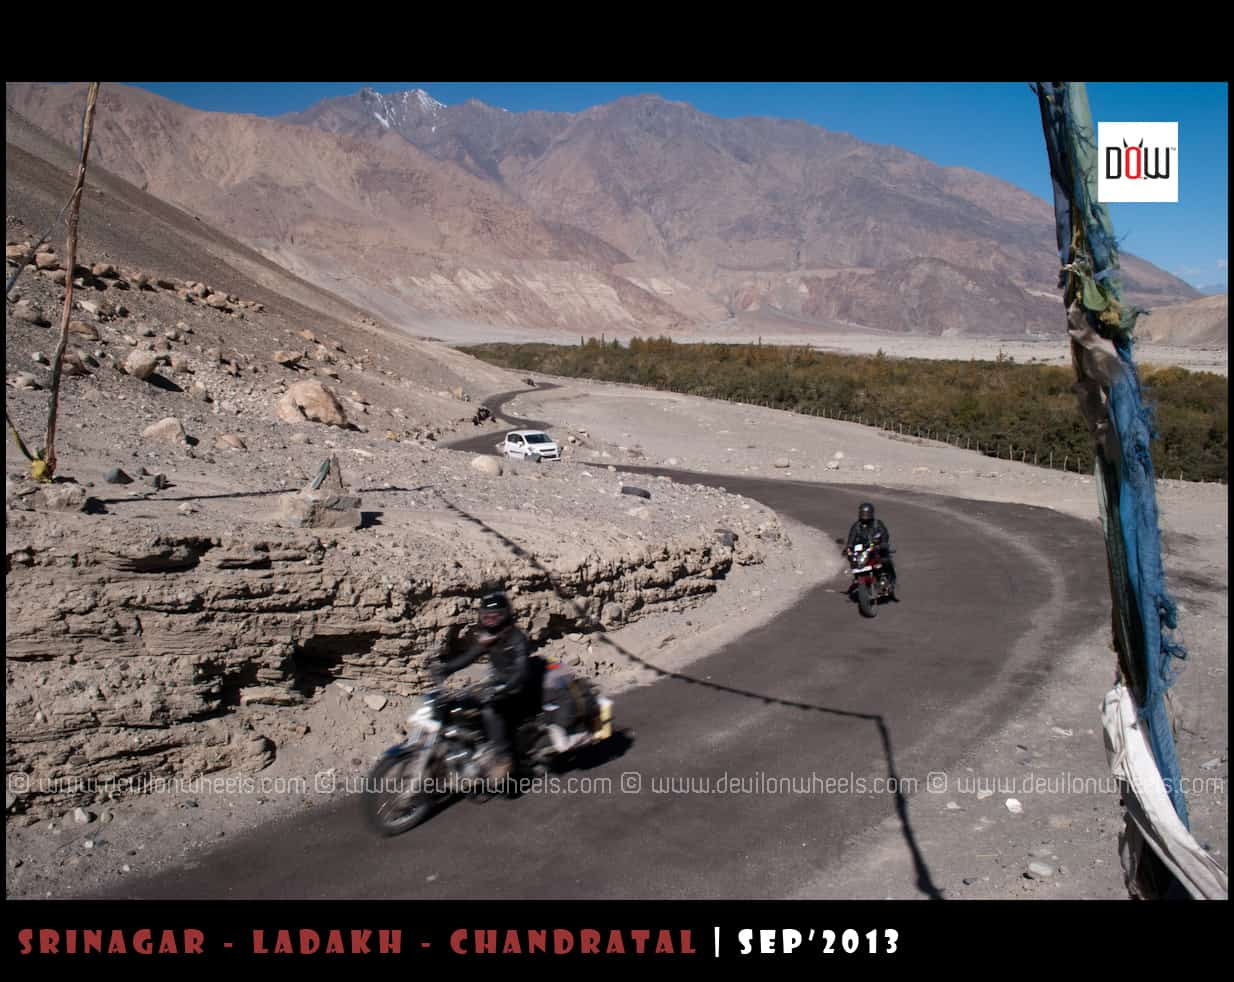 Are outside rented bikes allowed in Leh - Ladakh?